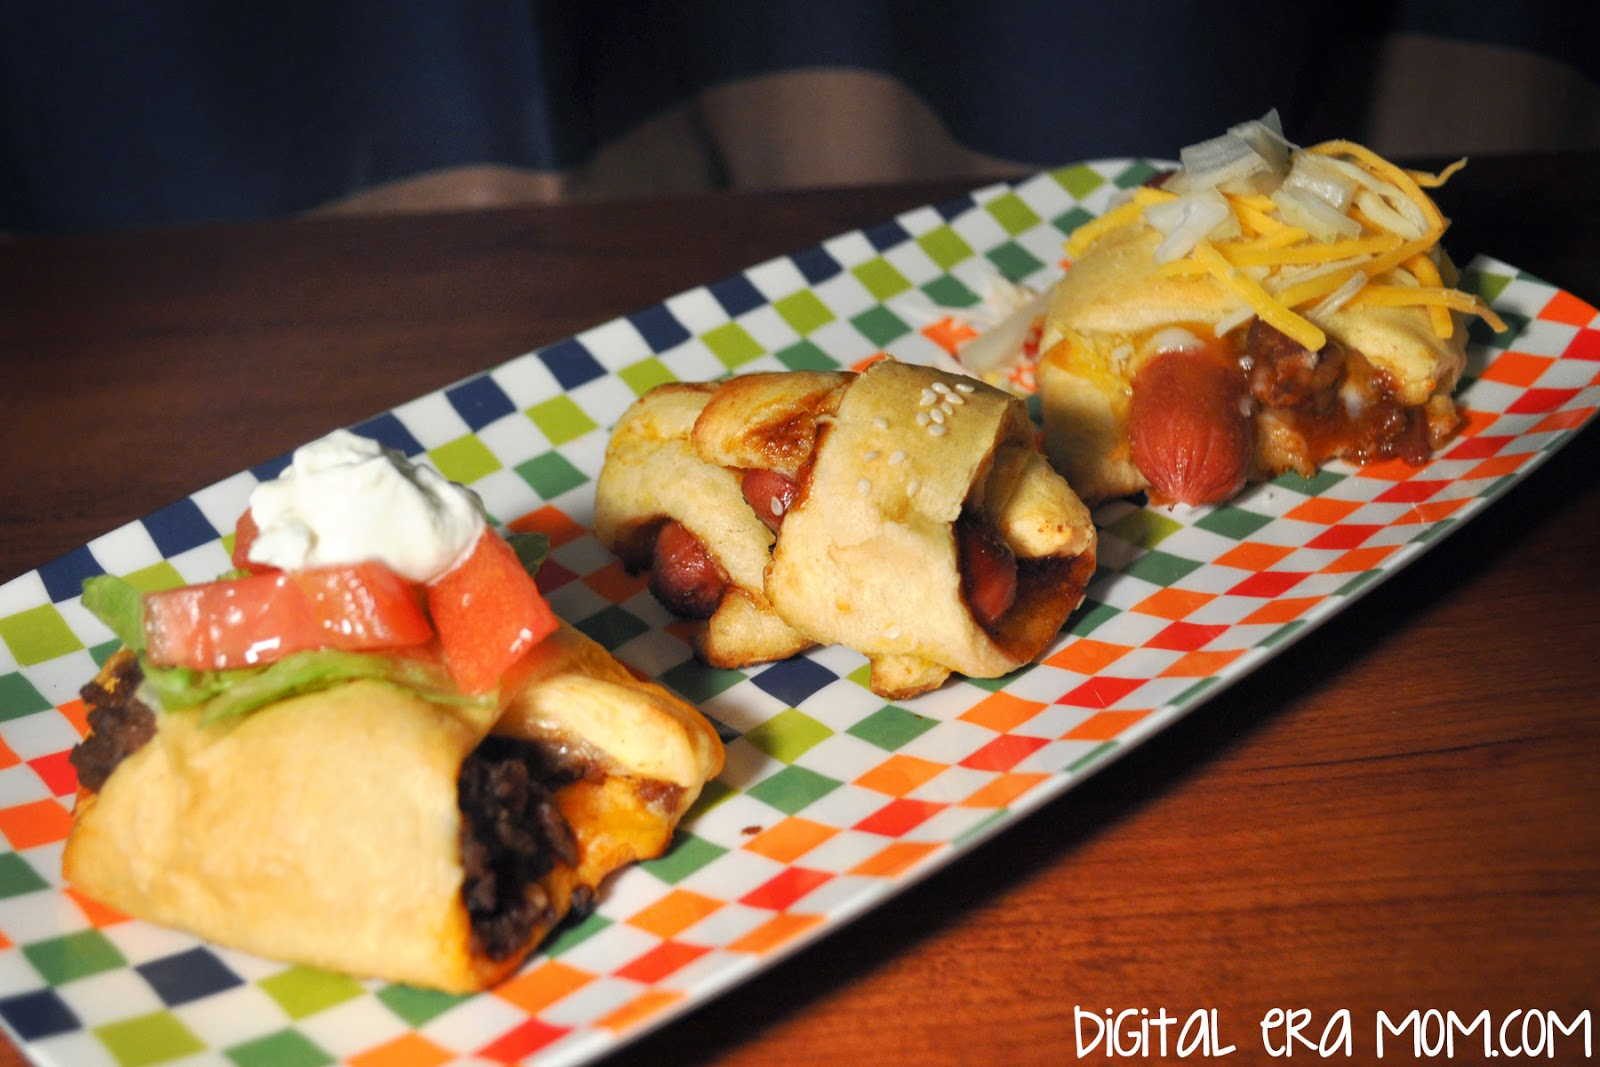 http://digitaleramom.com/2014/04/21/pigs-in-a-blanket-3-new-twists/